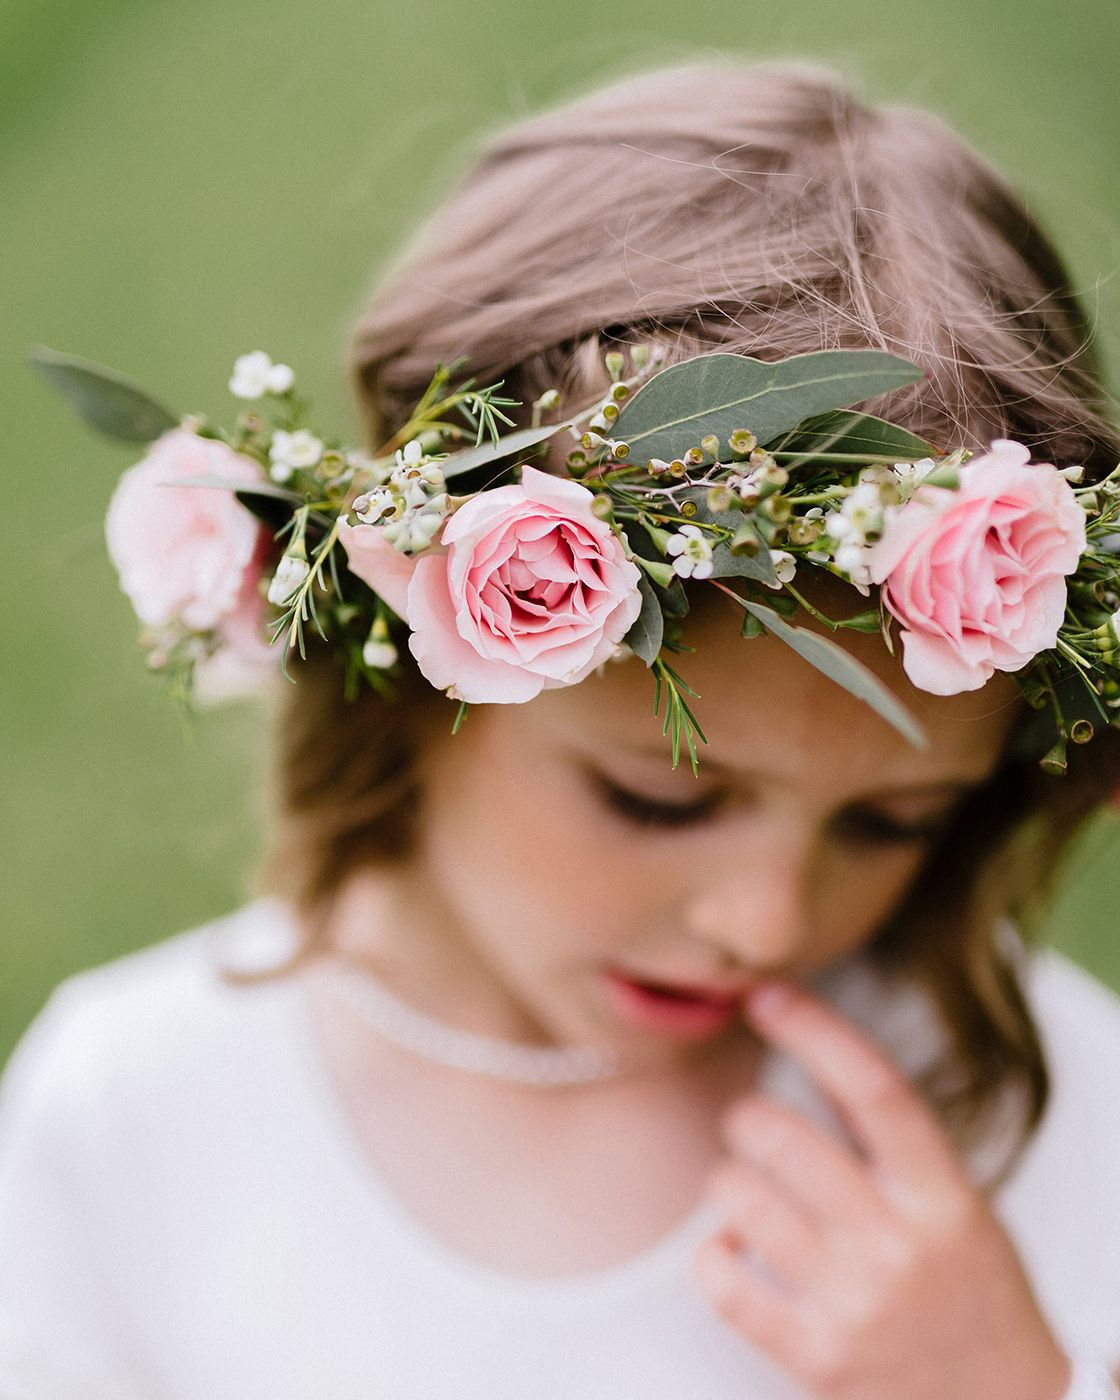 A Lovely And Sweet Garden Wedding Flower Crown For The